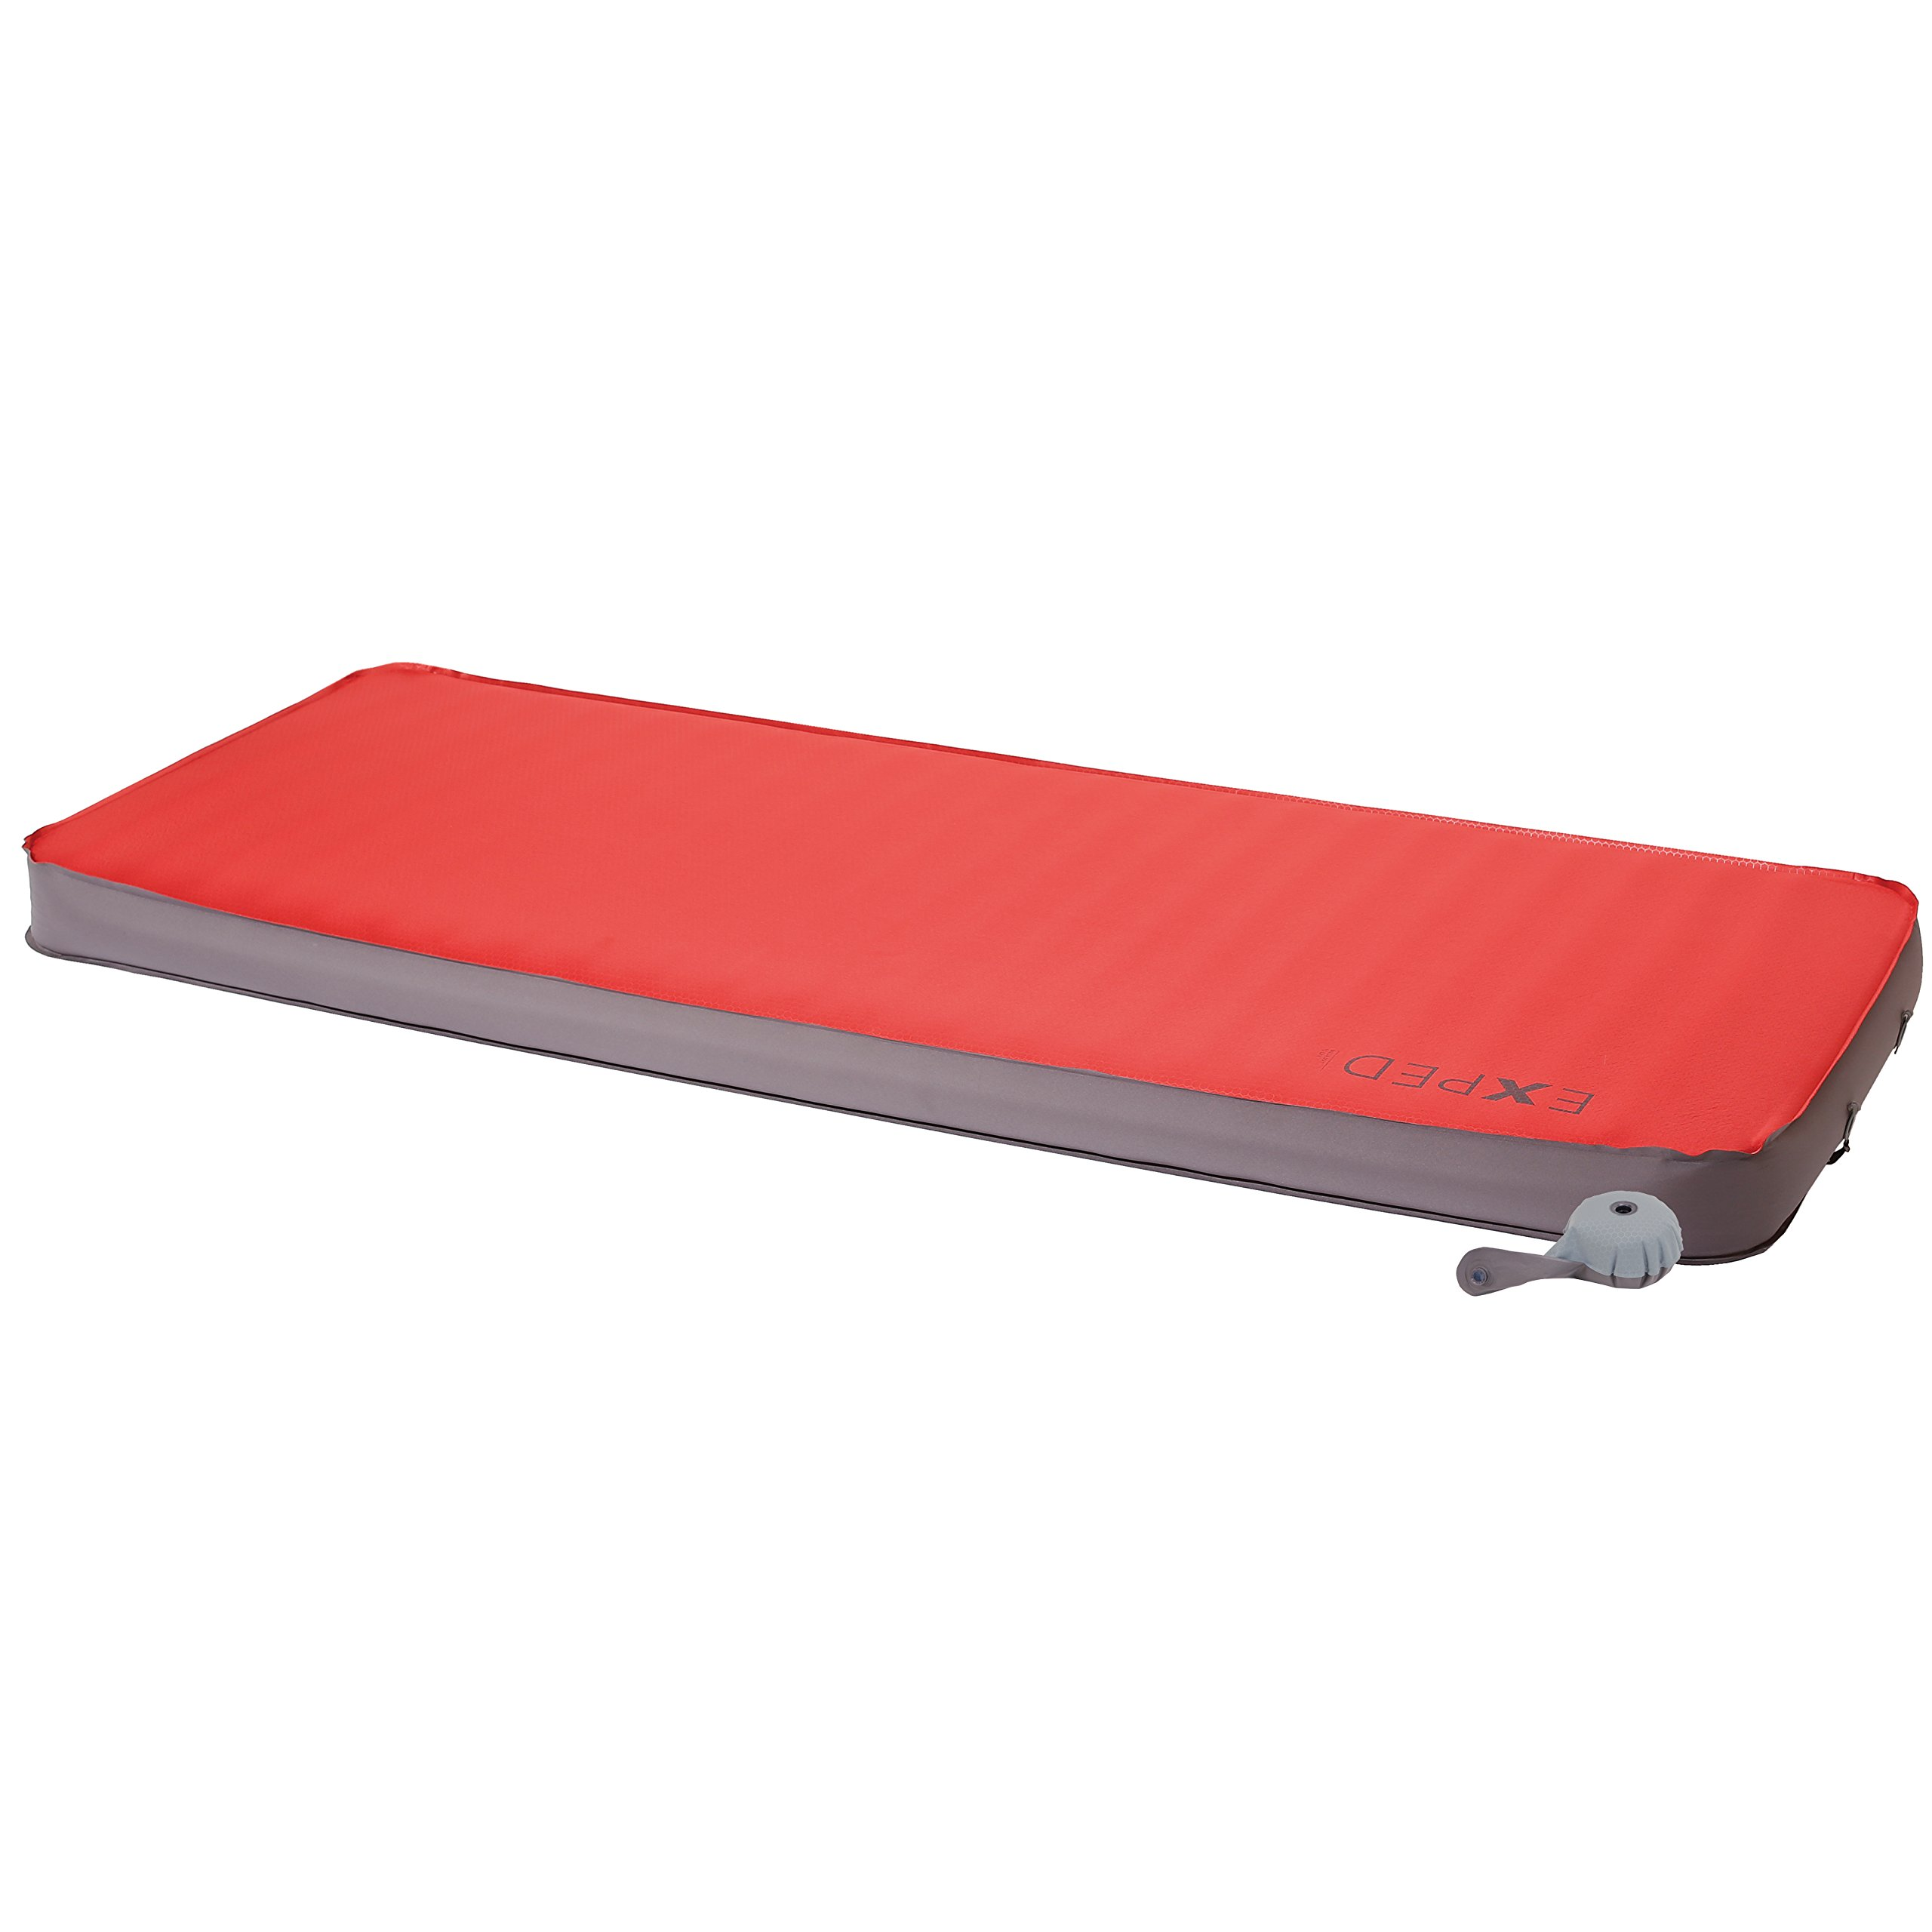 Exped Megamat 10 Insulated Self-Inflating Sleeping Pad, Ruby Red, Long Wide by Exped